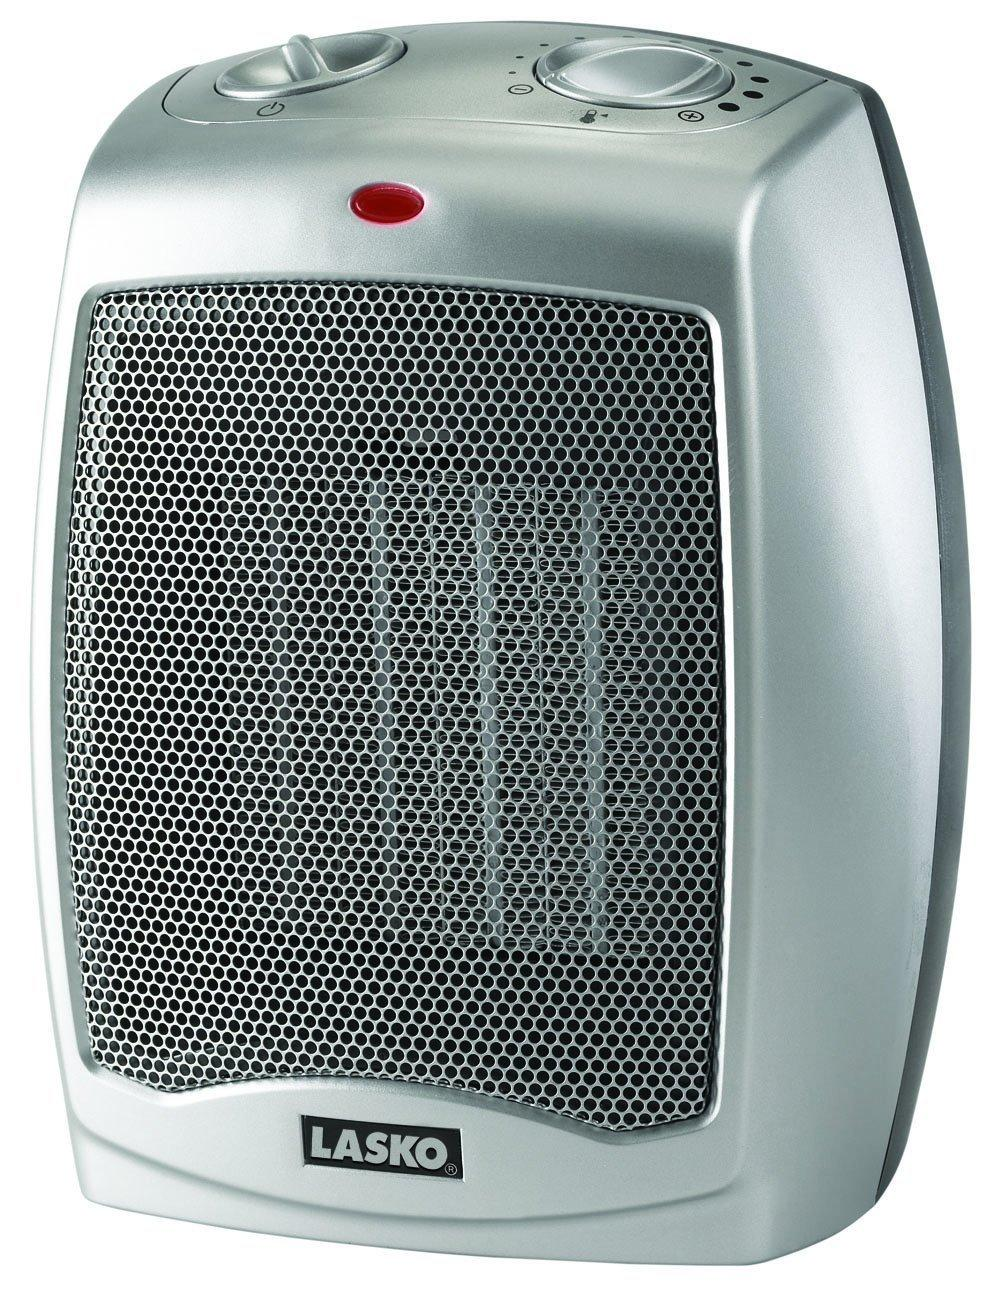 $23.99 Lasko 754200 Ceramic Heater with Adjustable Thermostat